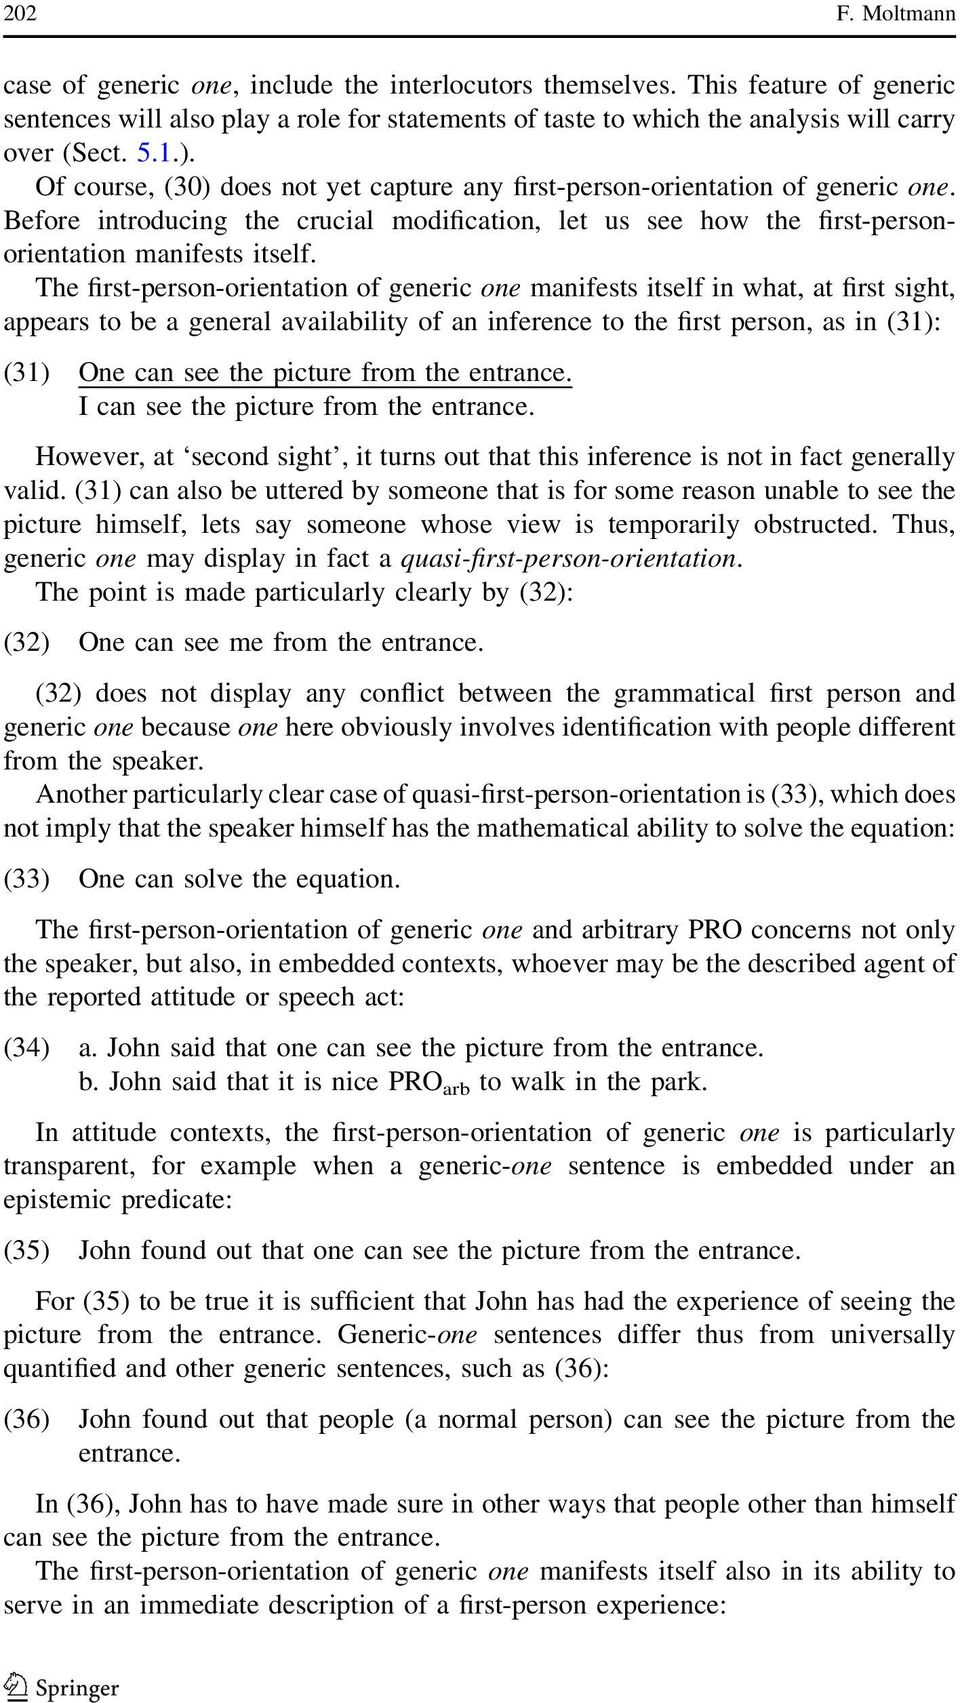 The first-person-orientation of generic one manifests itself in what, at first sight, appears to be a general availability of an inference to the first person, as in (31): (31) One can see the